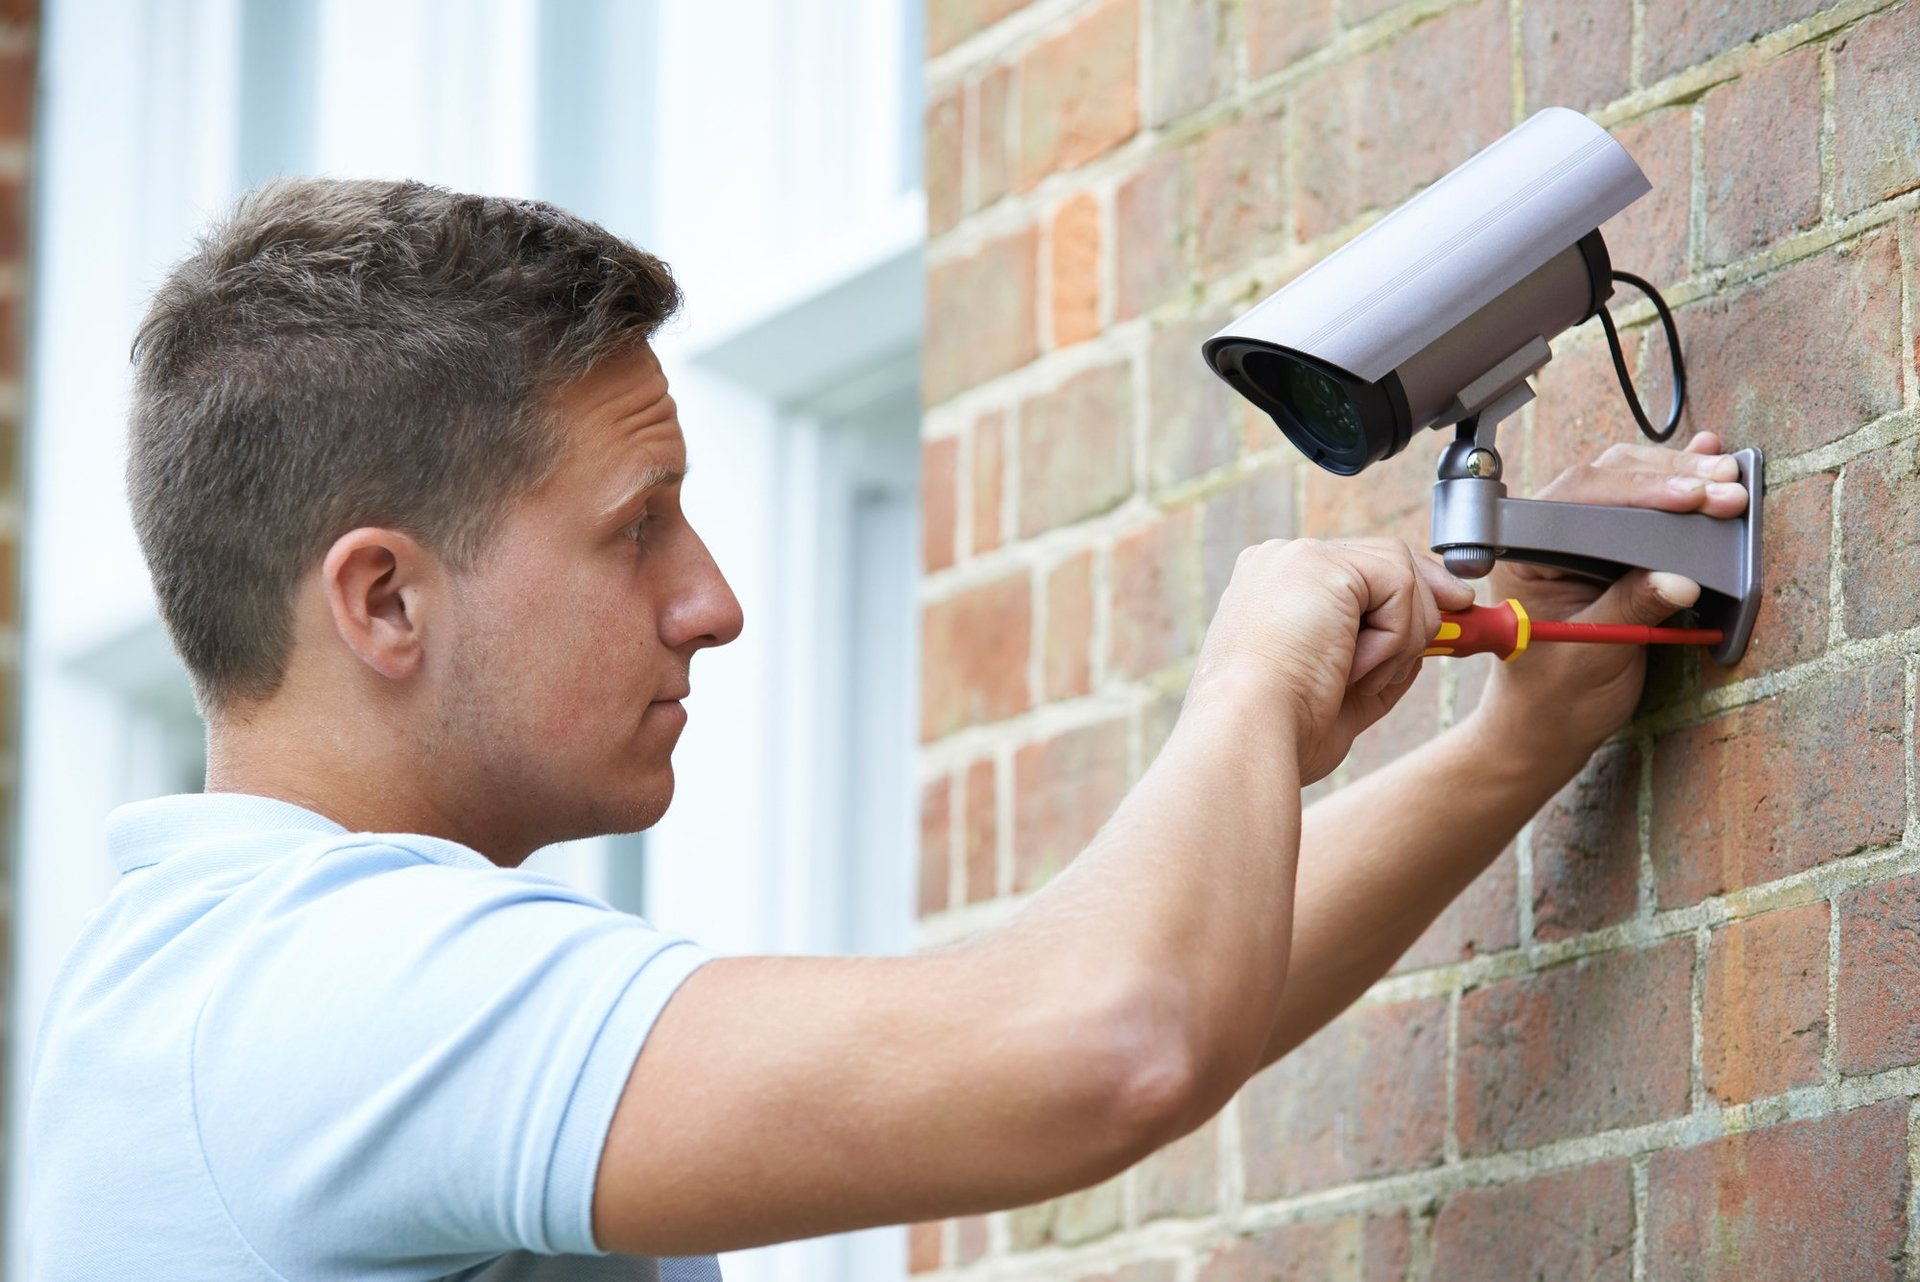 man installing security camera